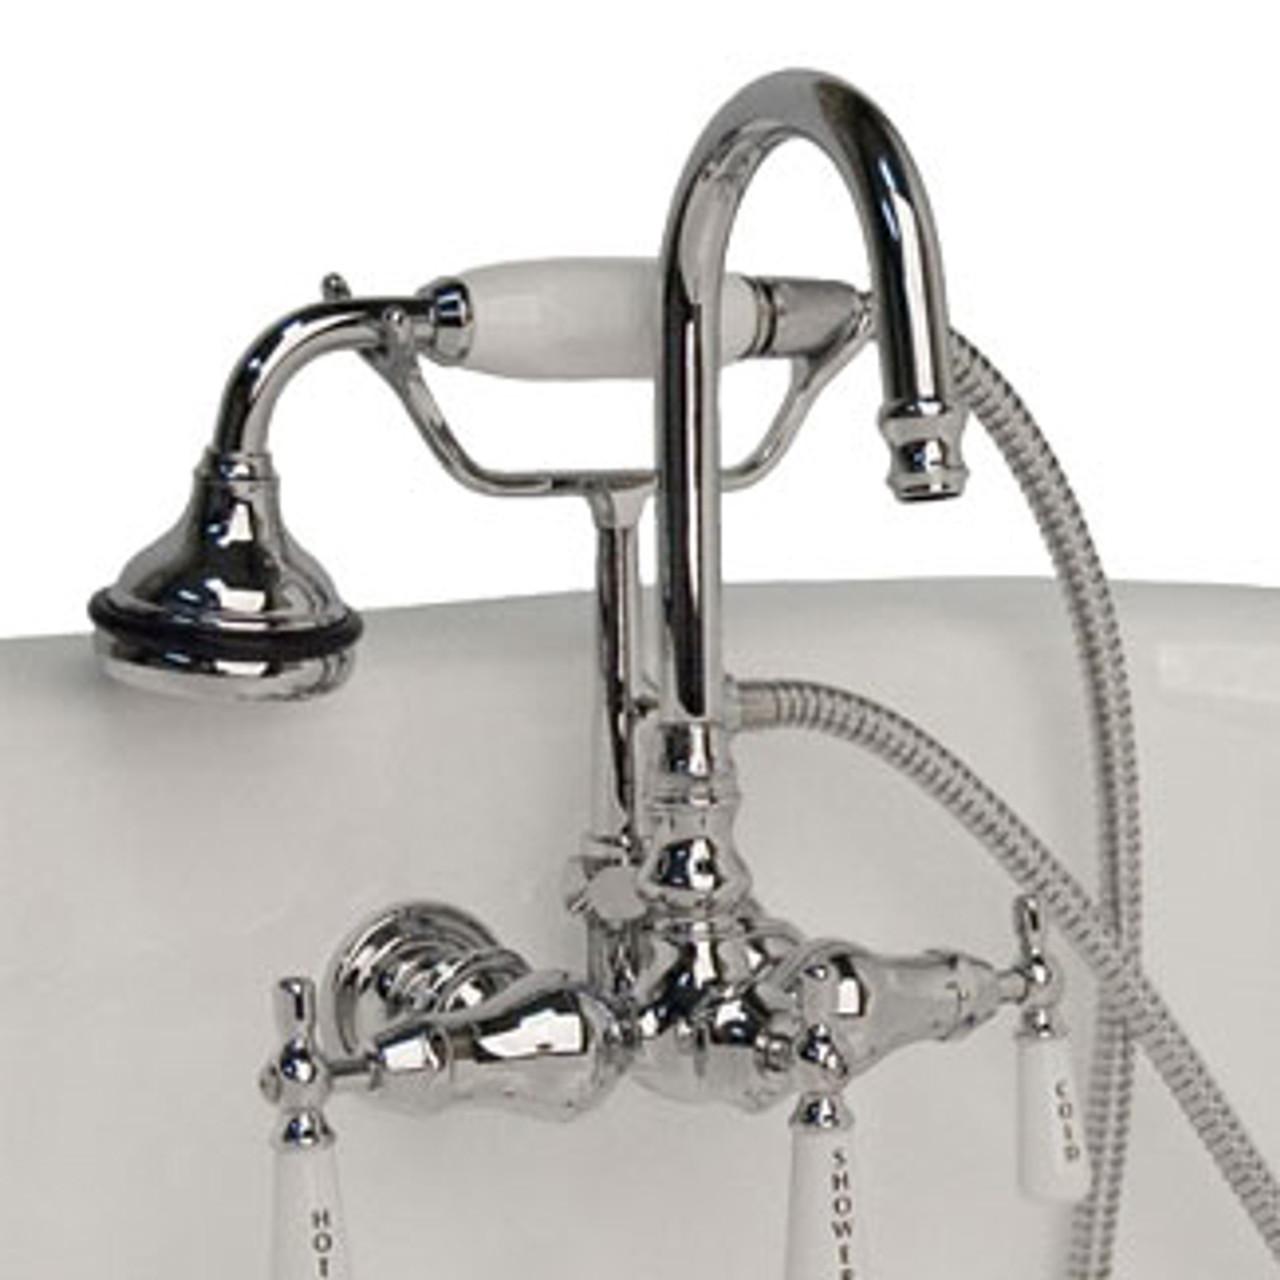 cambridge plumbing clawfoot tub brass wall mount faucet with hand held shower polished chrome brushed nickel or oil rubbed bronze